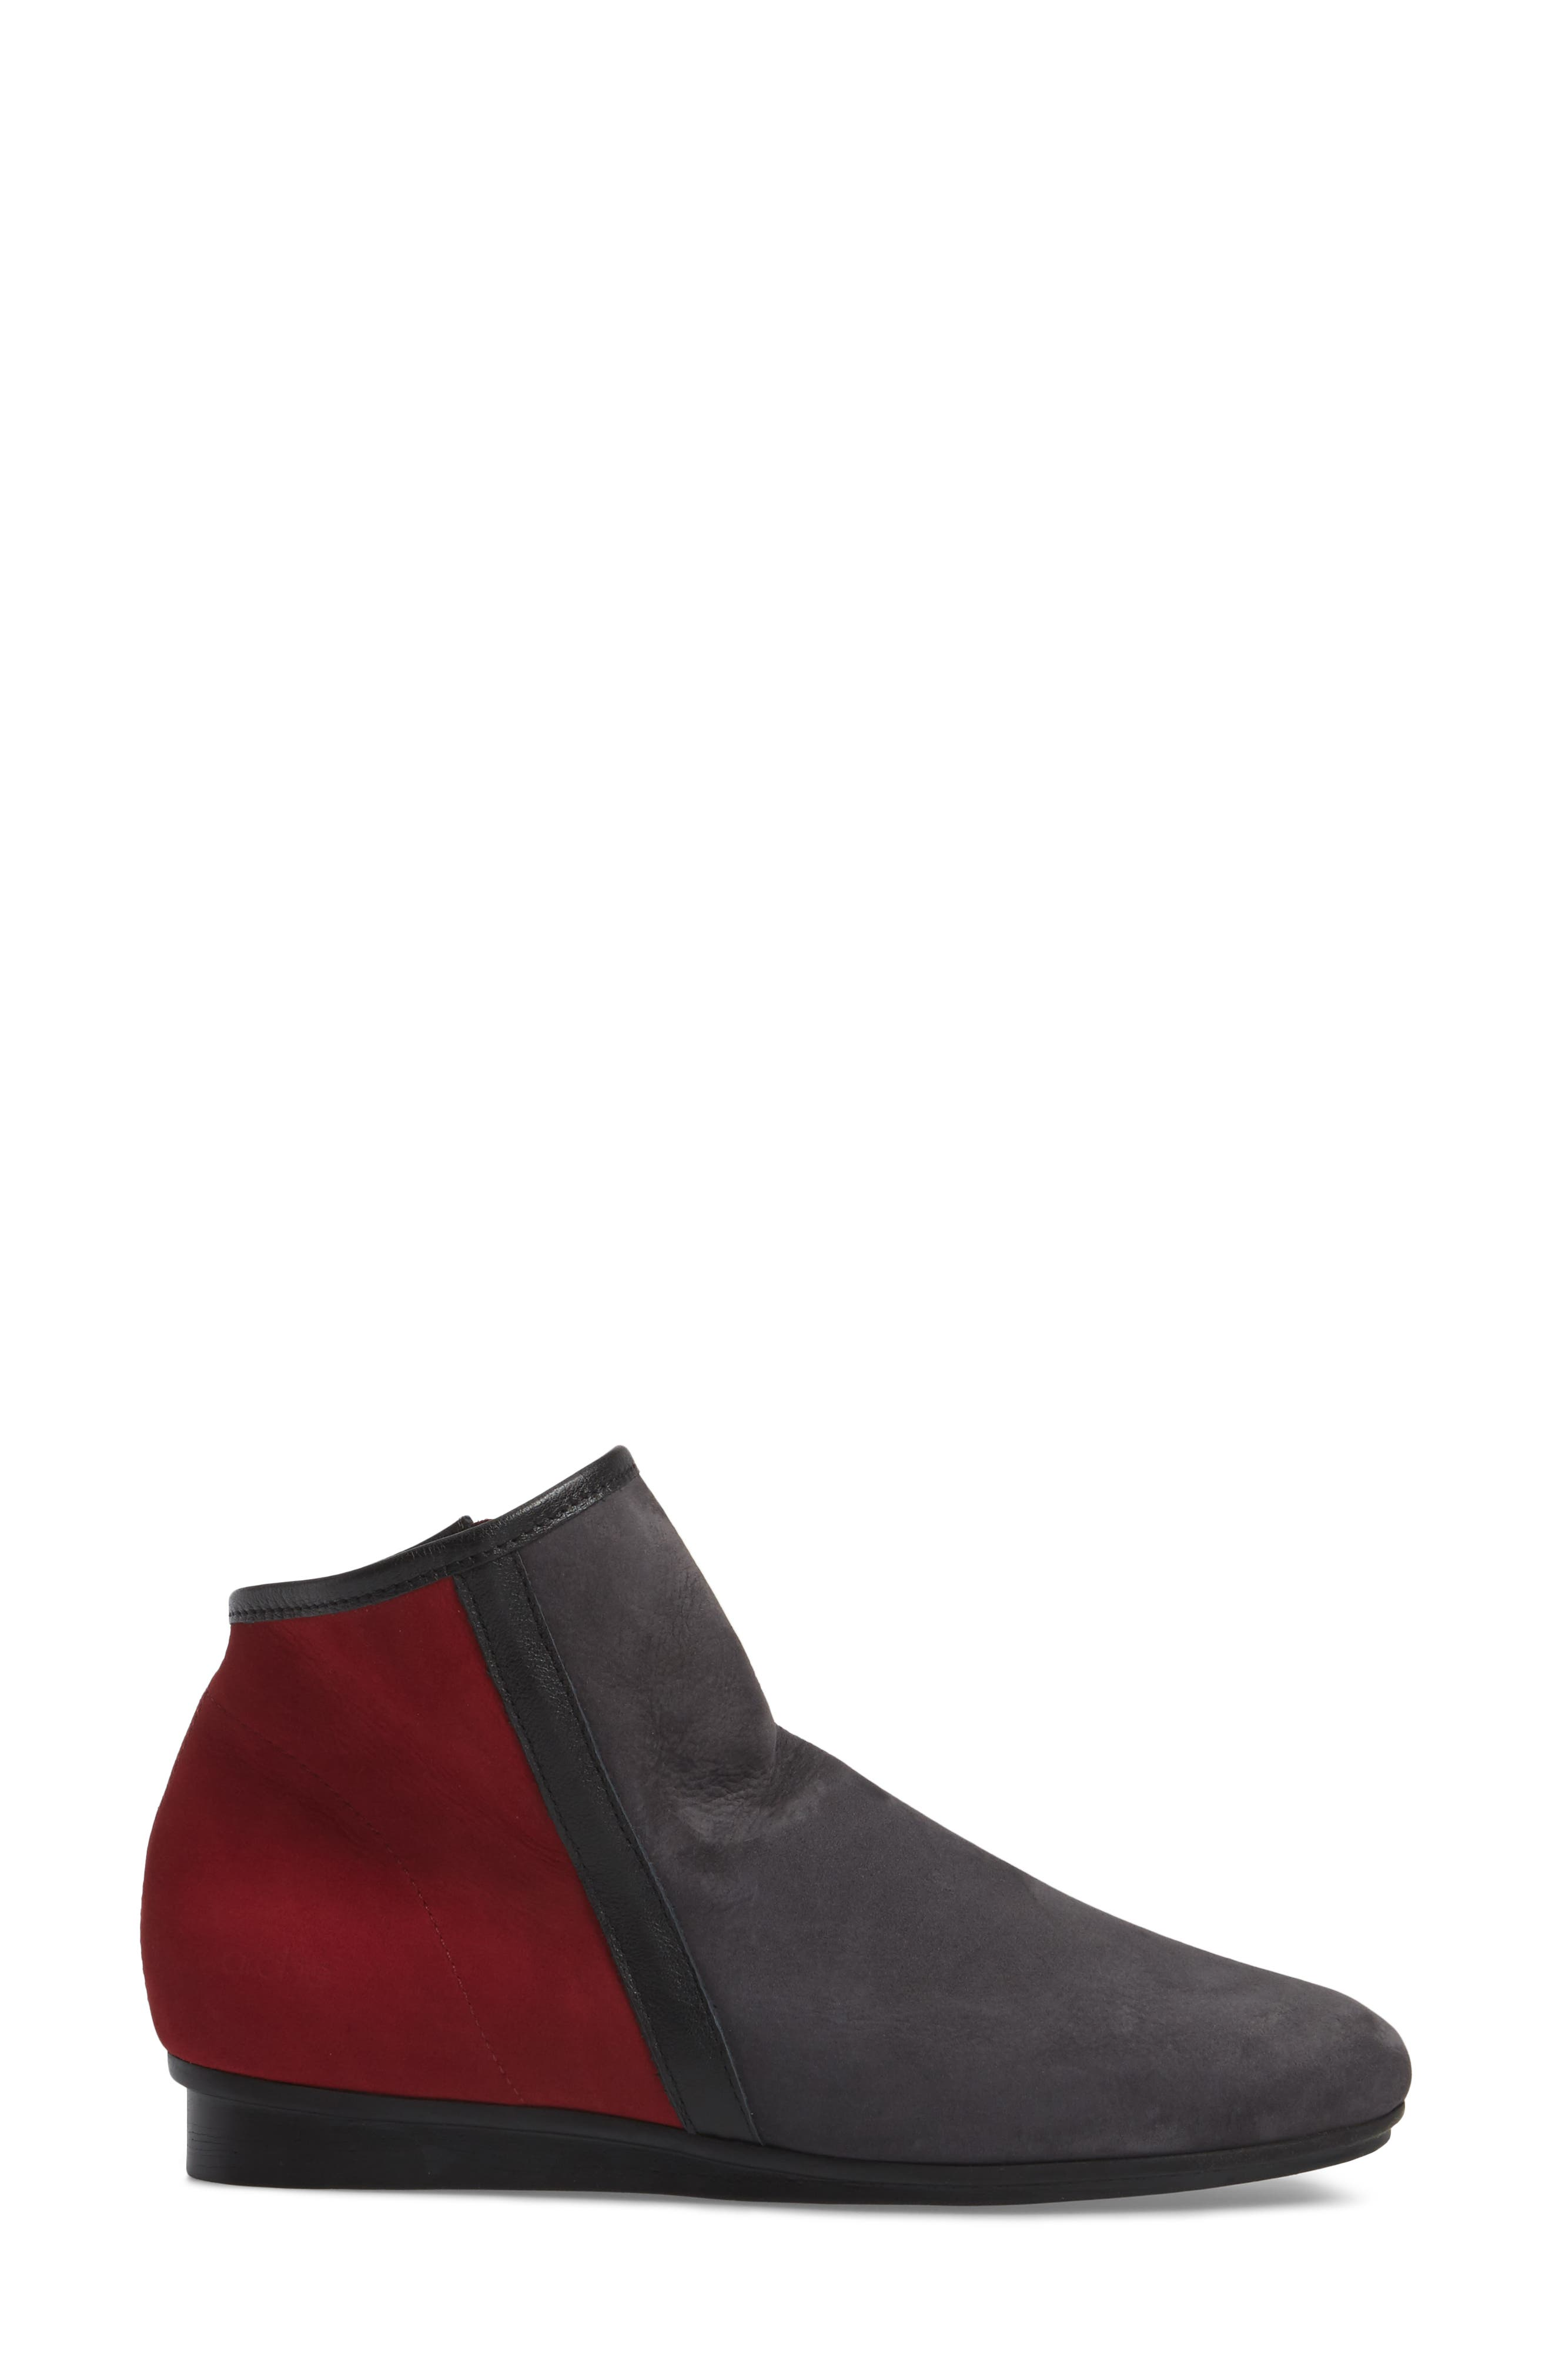 Ninote Bootie,                             Alternate thumbnail 3, color,                             022